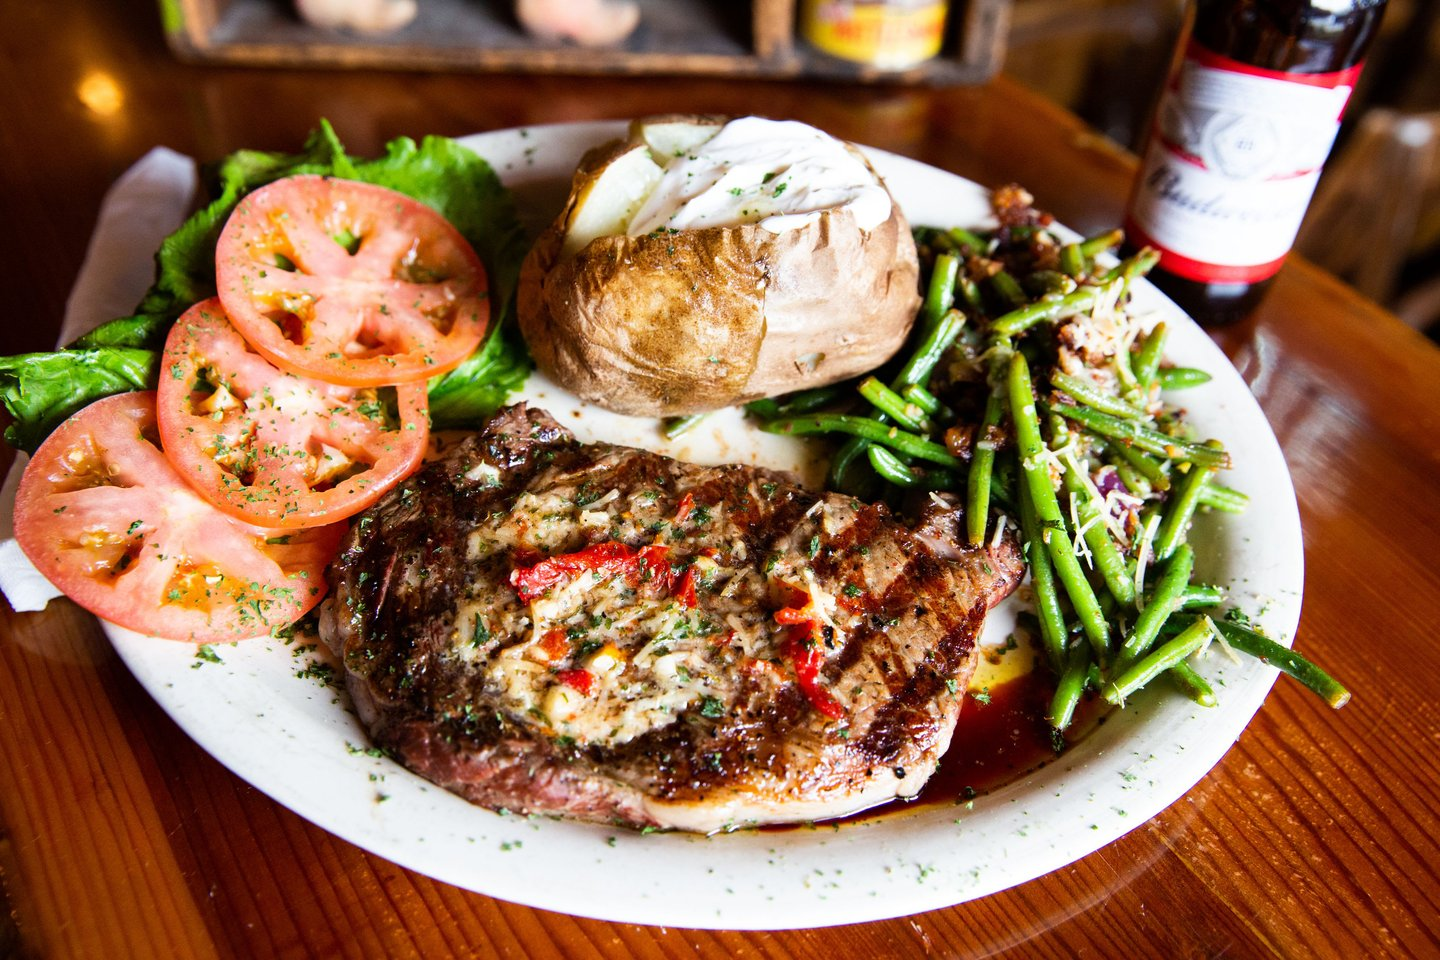 steak with baked potato and greenes